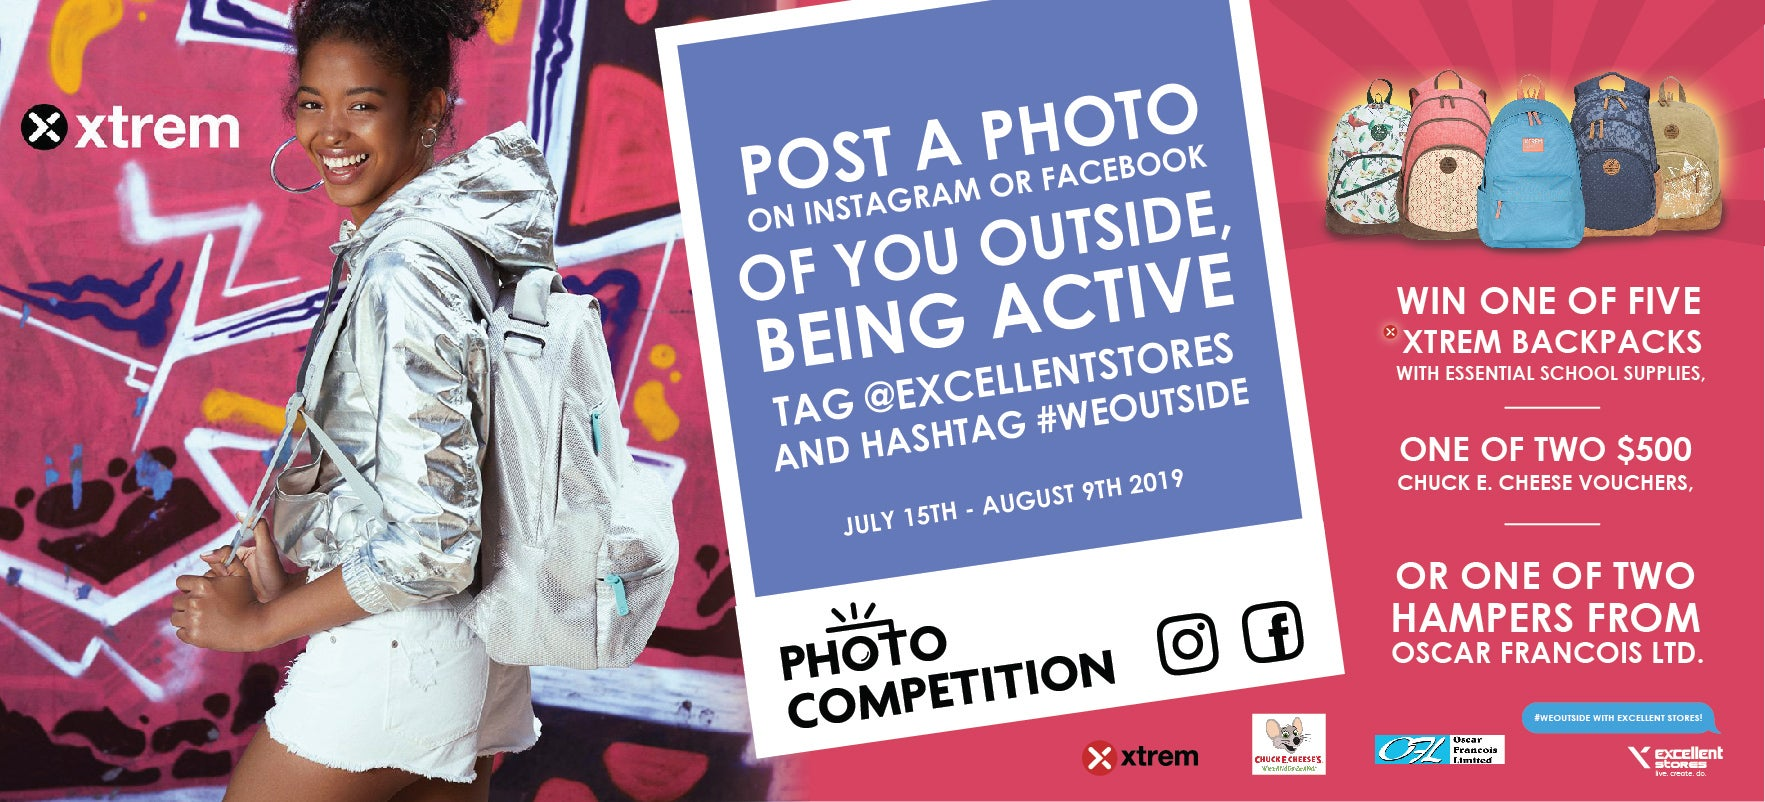 We Outside Photo Competition